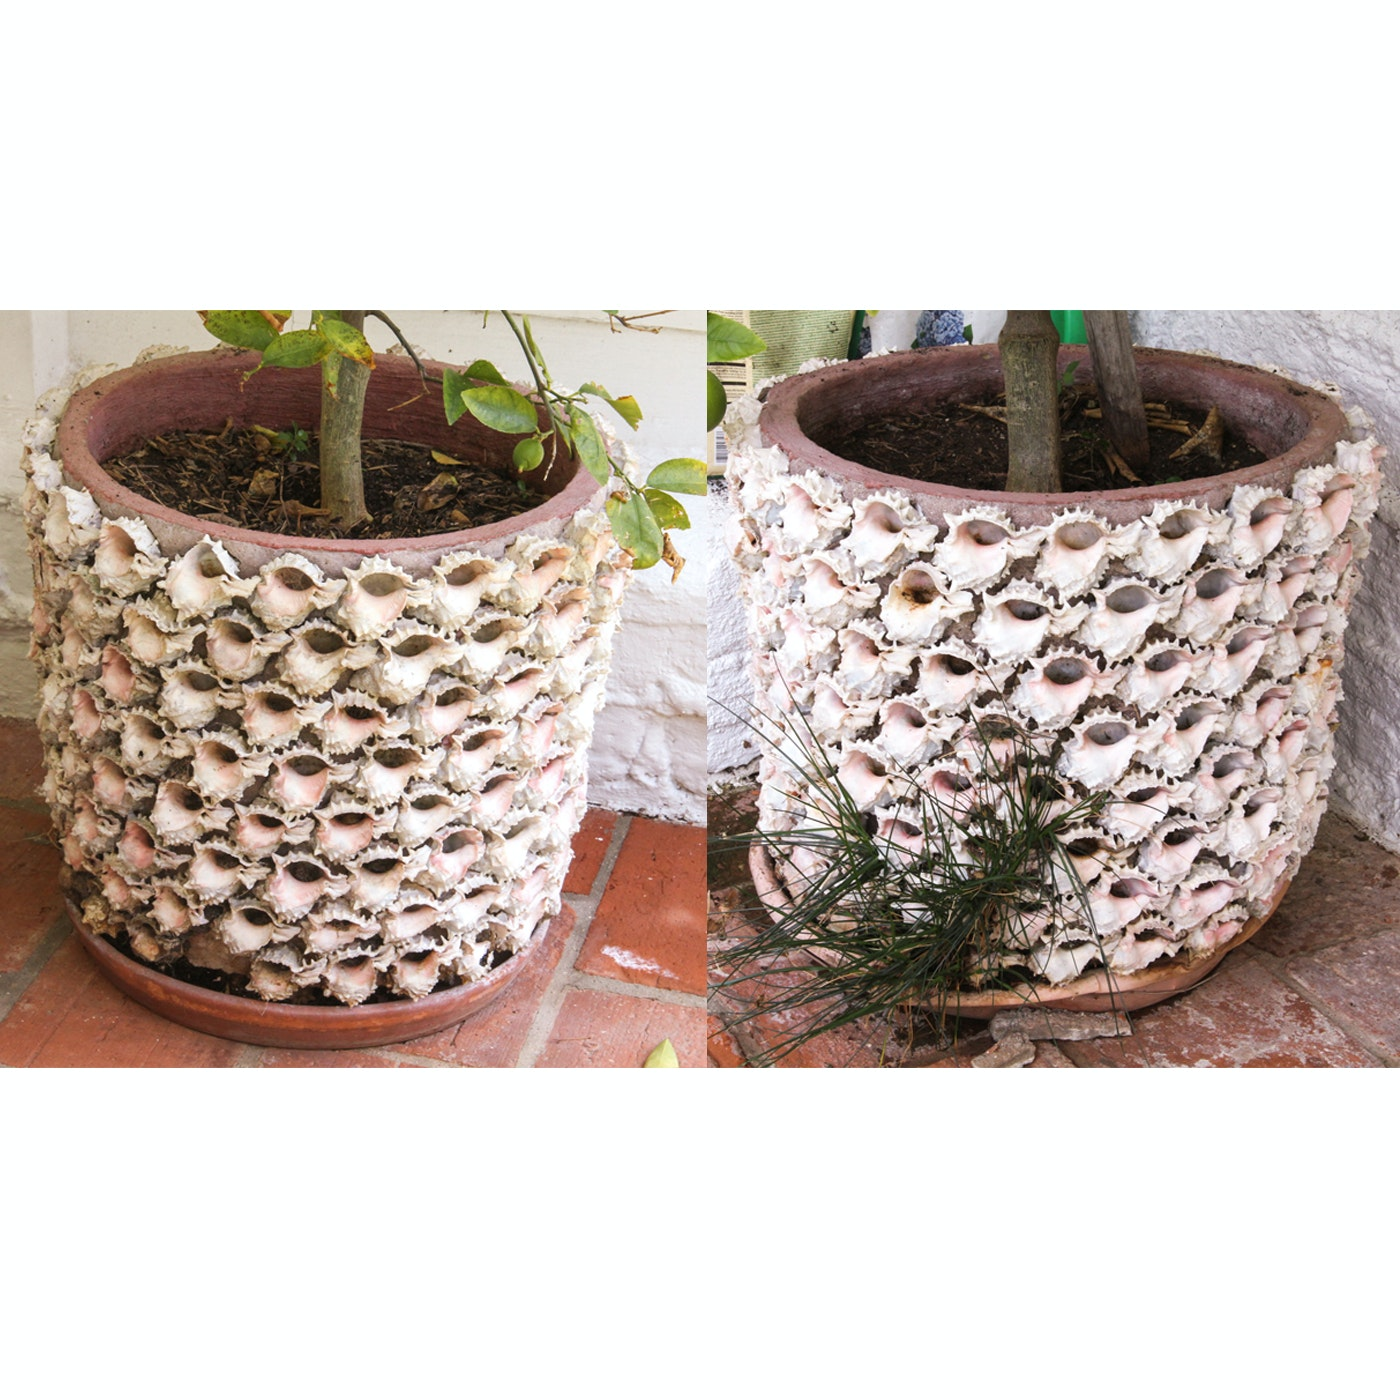 Pair of Conch Shell Encrusted Planters with Citrus Trees